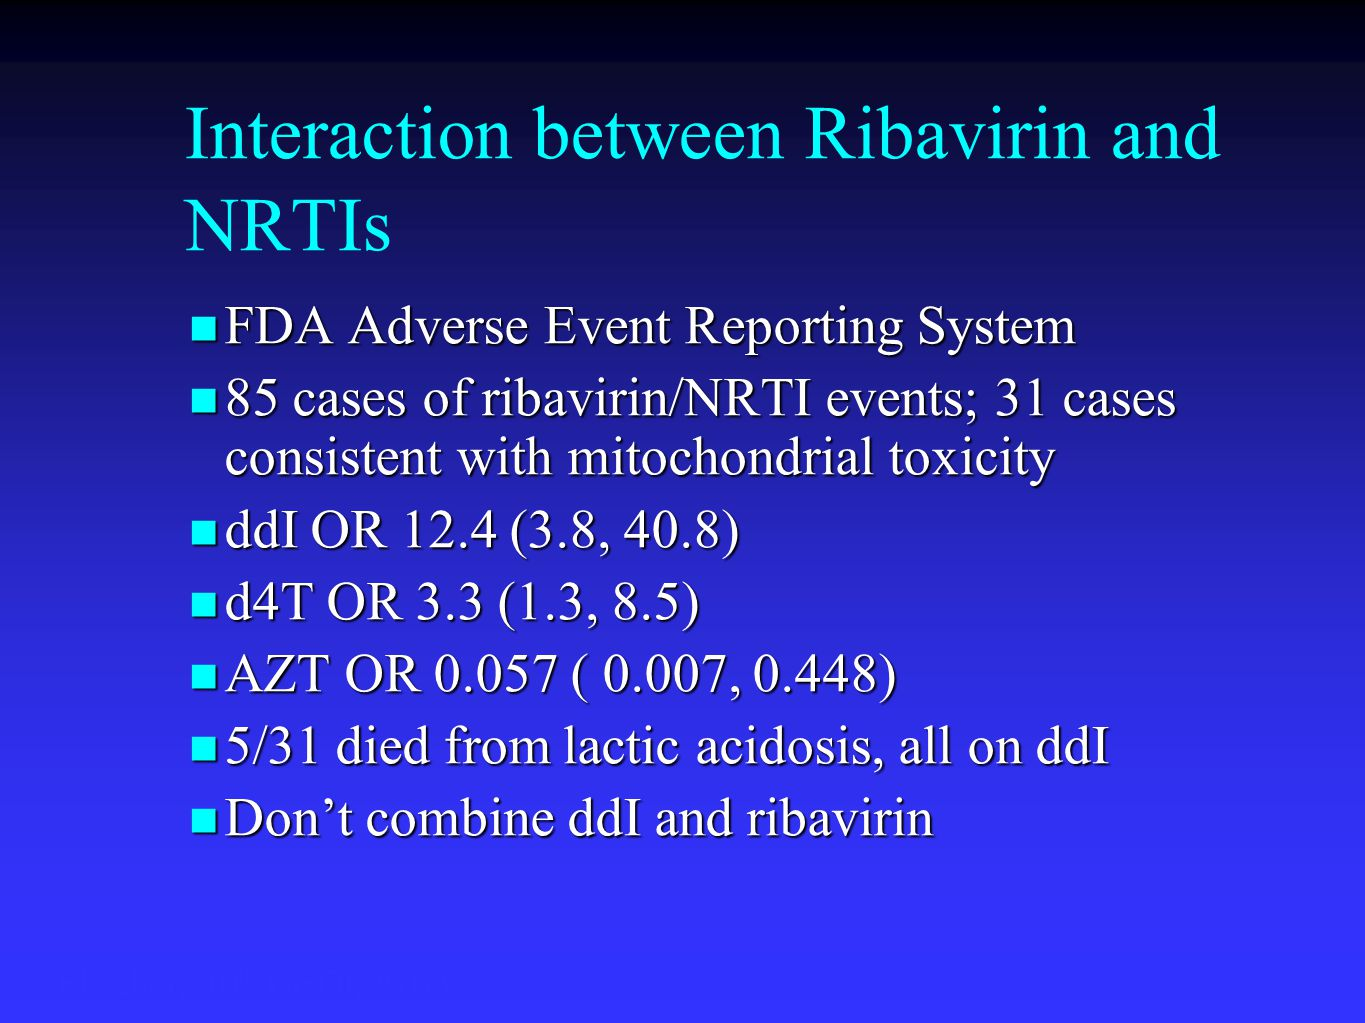 Interaction between Ribavirin and NRTIs FDA Adverse Event Reporting System FDA Adverse Event Reporting System 85 cases of ribavirin/NRTI events; 31 cases consistent with mitochondrial toxicity 85 cases of ribavirin/NRTI events; 31 cases consistent with mitochondrial toxicity ddI OR 12.4 (3.8, 40.8) ddI OR 12.4 (3.8, 40.8) d4T OR 3.3 (1.3, 8.5) d4T OR 3.3 (1.3, 8.5) AZT OR 0.057 ( 0.007, 0.448) AZT OR 0.057 ( 0.007, 0.448) 5/31 died from lactic acidosis, all on ddI 5/31 died from lactic acidosis, all on ddI Don't combine ddI and ribavirin Don't combine ddI and ribavirin Fleisher, 10 th CROI, #763